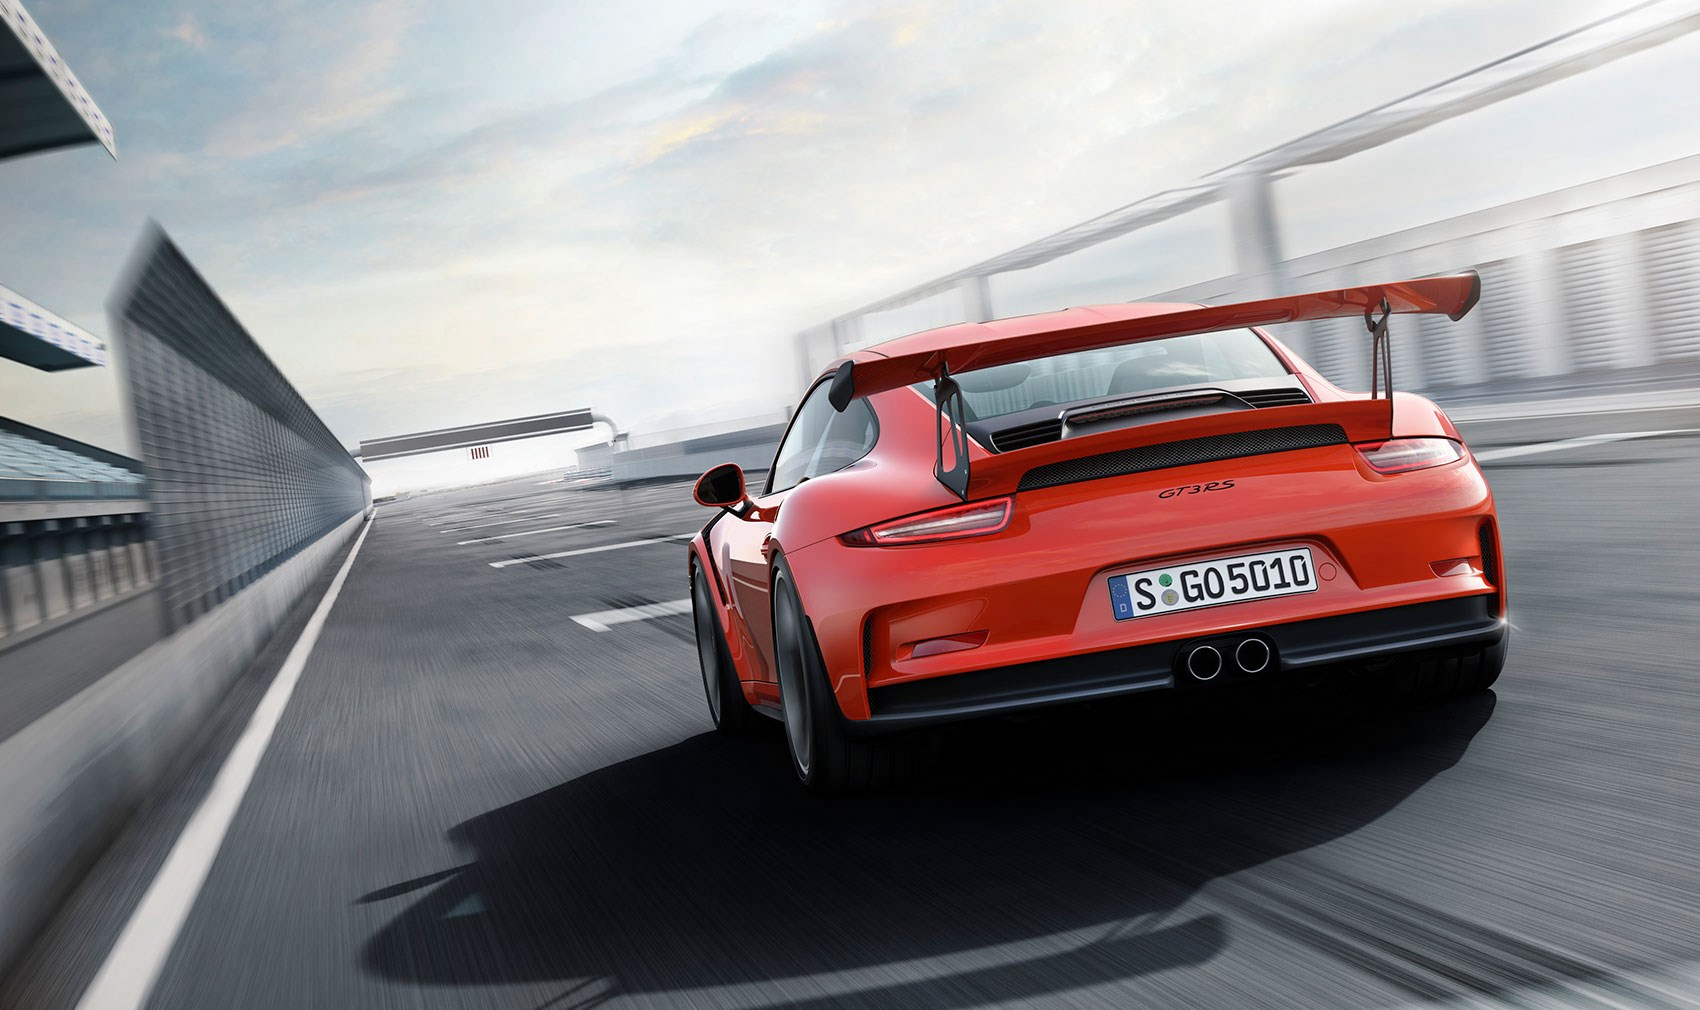 porsche 2015 gt3 rs. photo gallery porsche 2015 gt3 rs